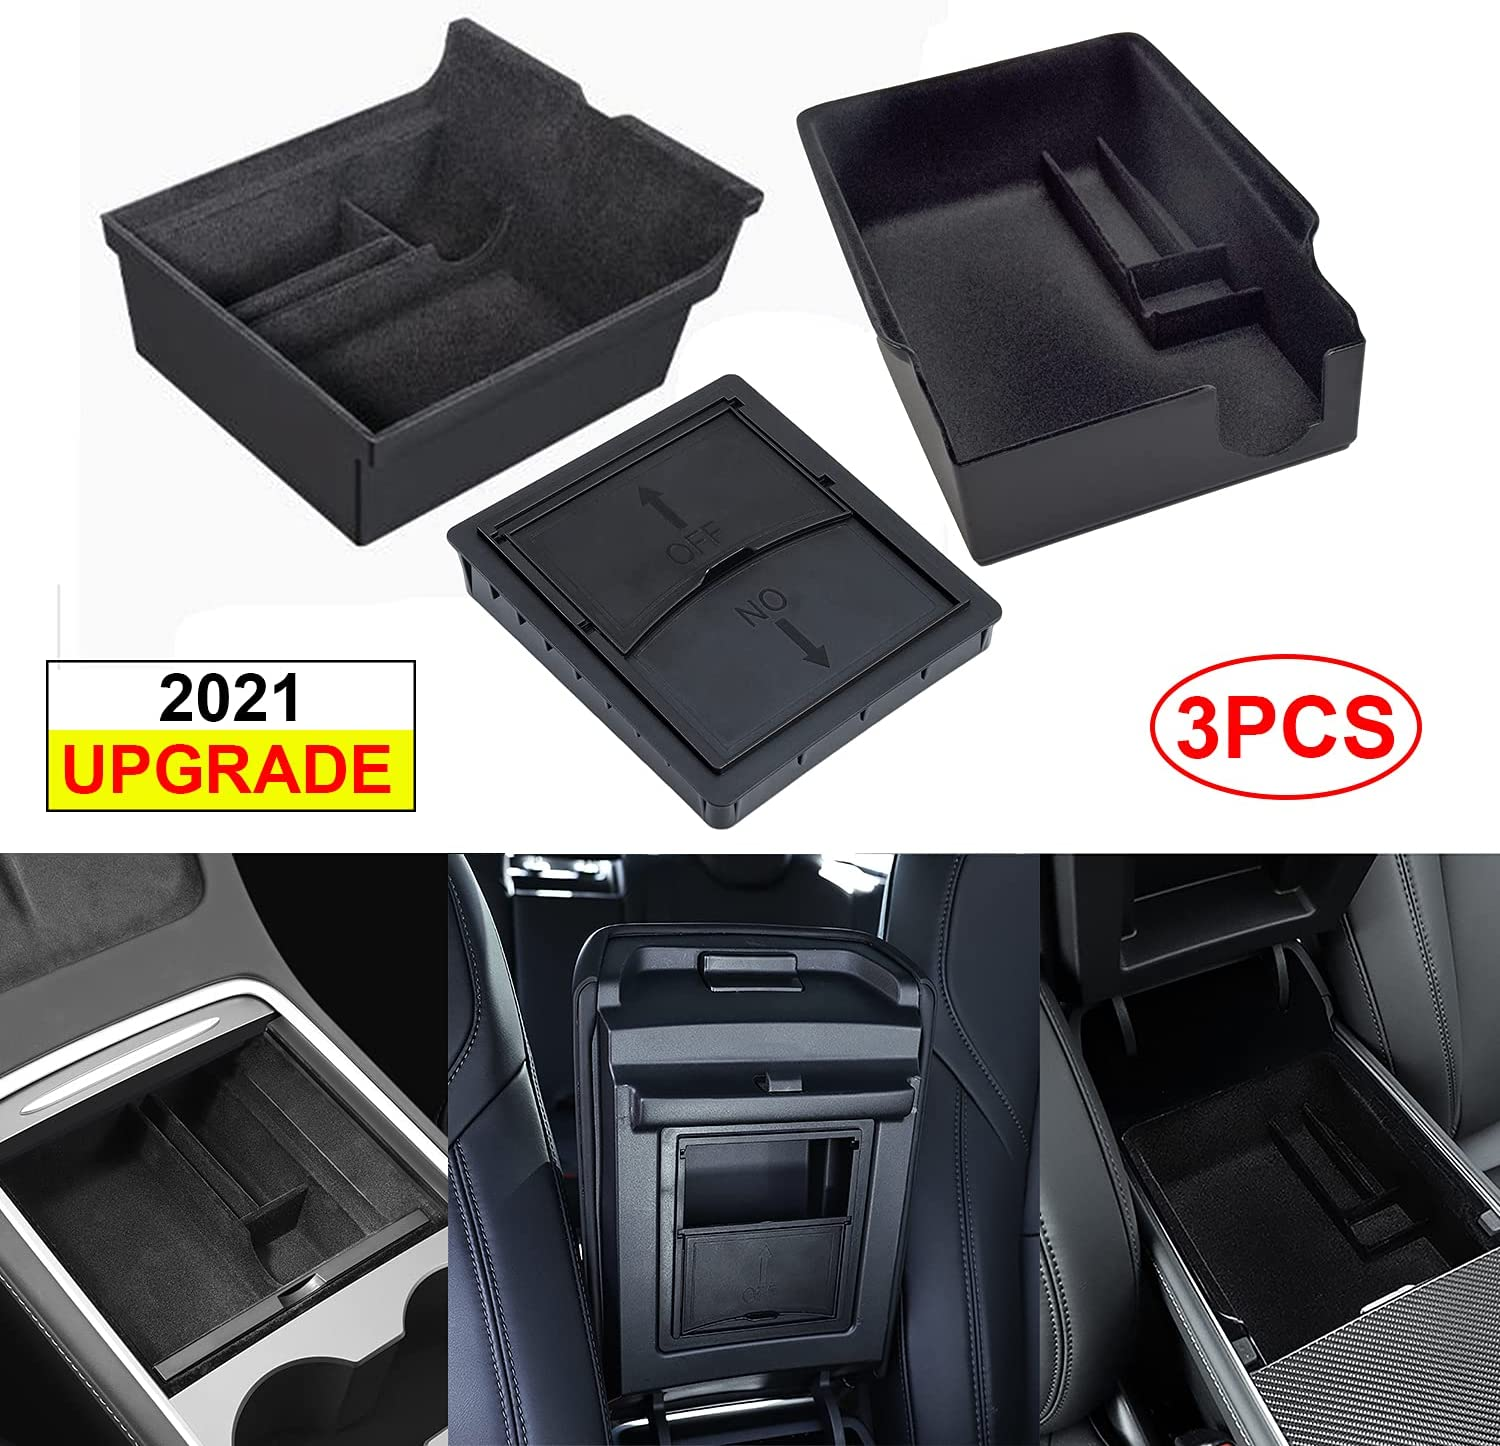 Luumtee 3PCS Center Console Organizer Tray Fit for Latest 2021 Tesla Model 3/Y Armrest Hidden Cubby Drawer Storage Box with Coin and Sunglass Holder Interior Accessories Tray (Flocked)